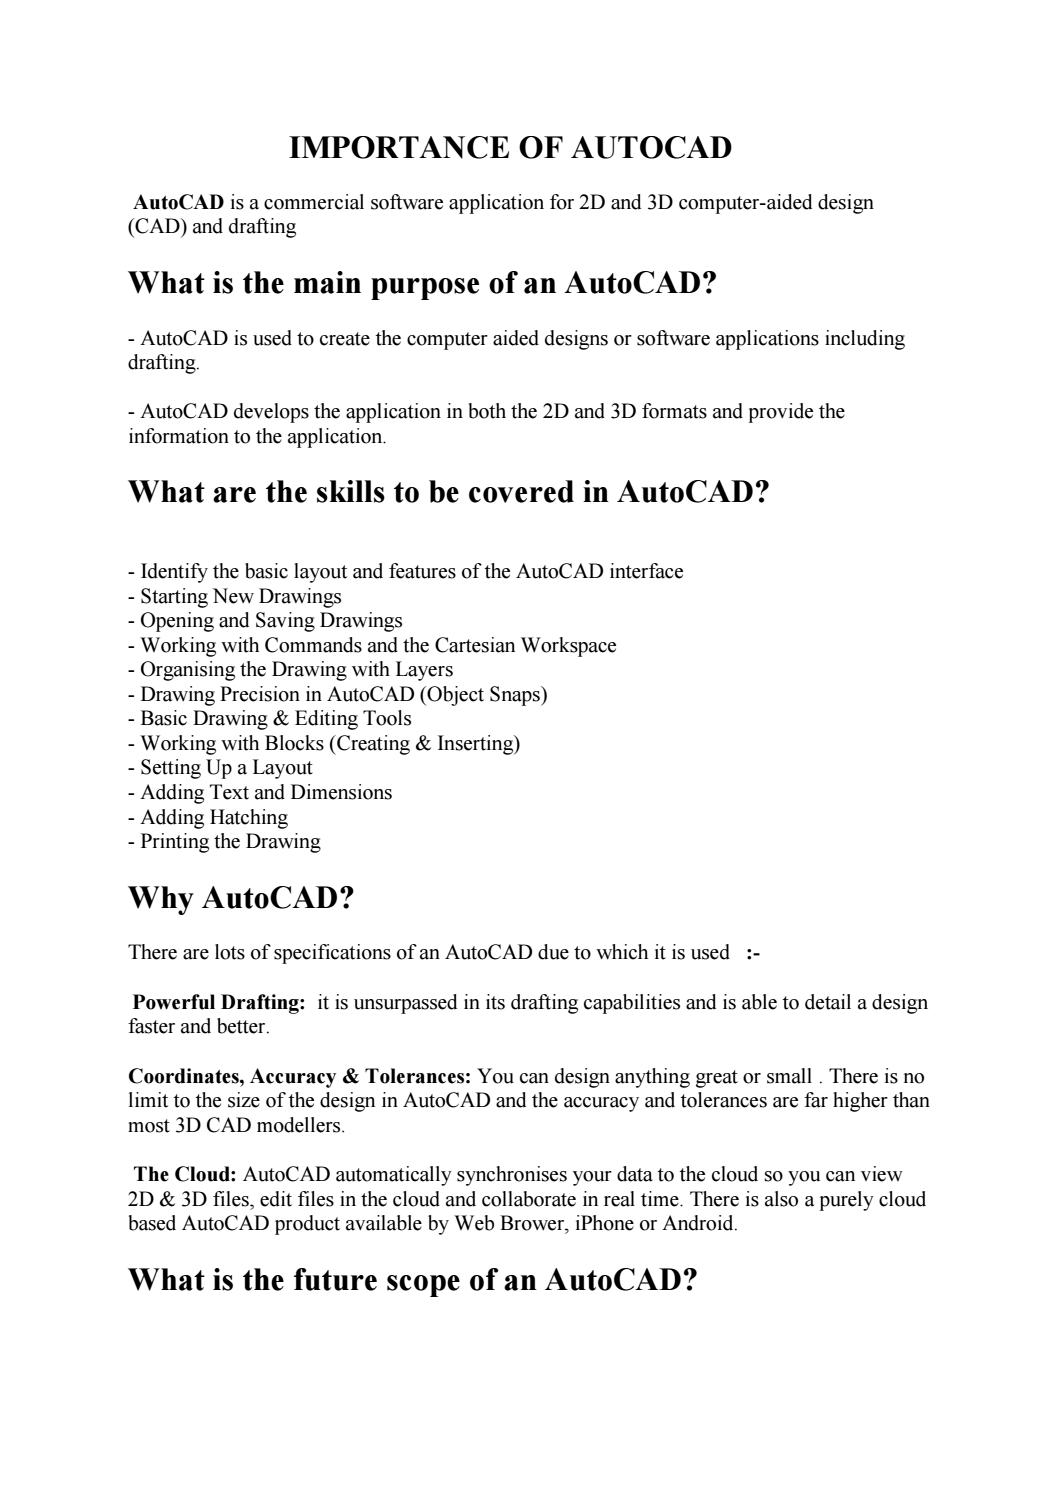 Importance of autocad training courses by softcrayons - issuu